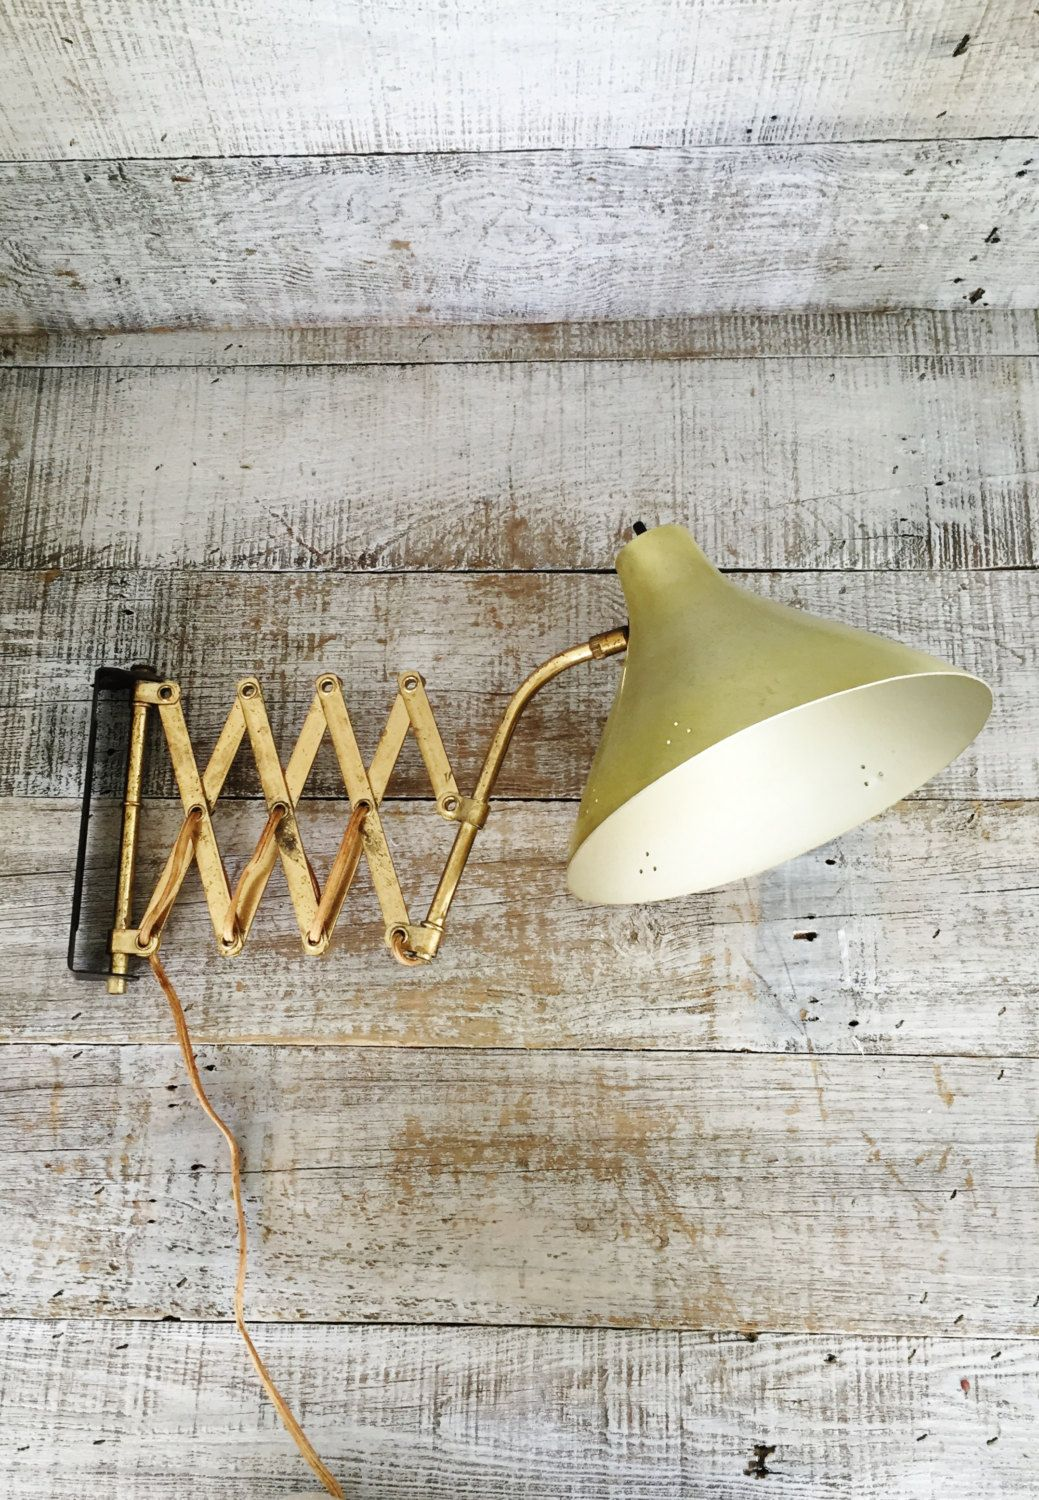 Accordion Wall Lamp Scissor Mount Arm Extendable Swing Light Vintage Swivel Mid Century Lighting By